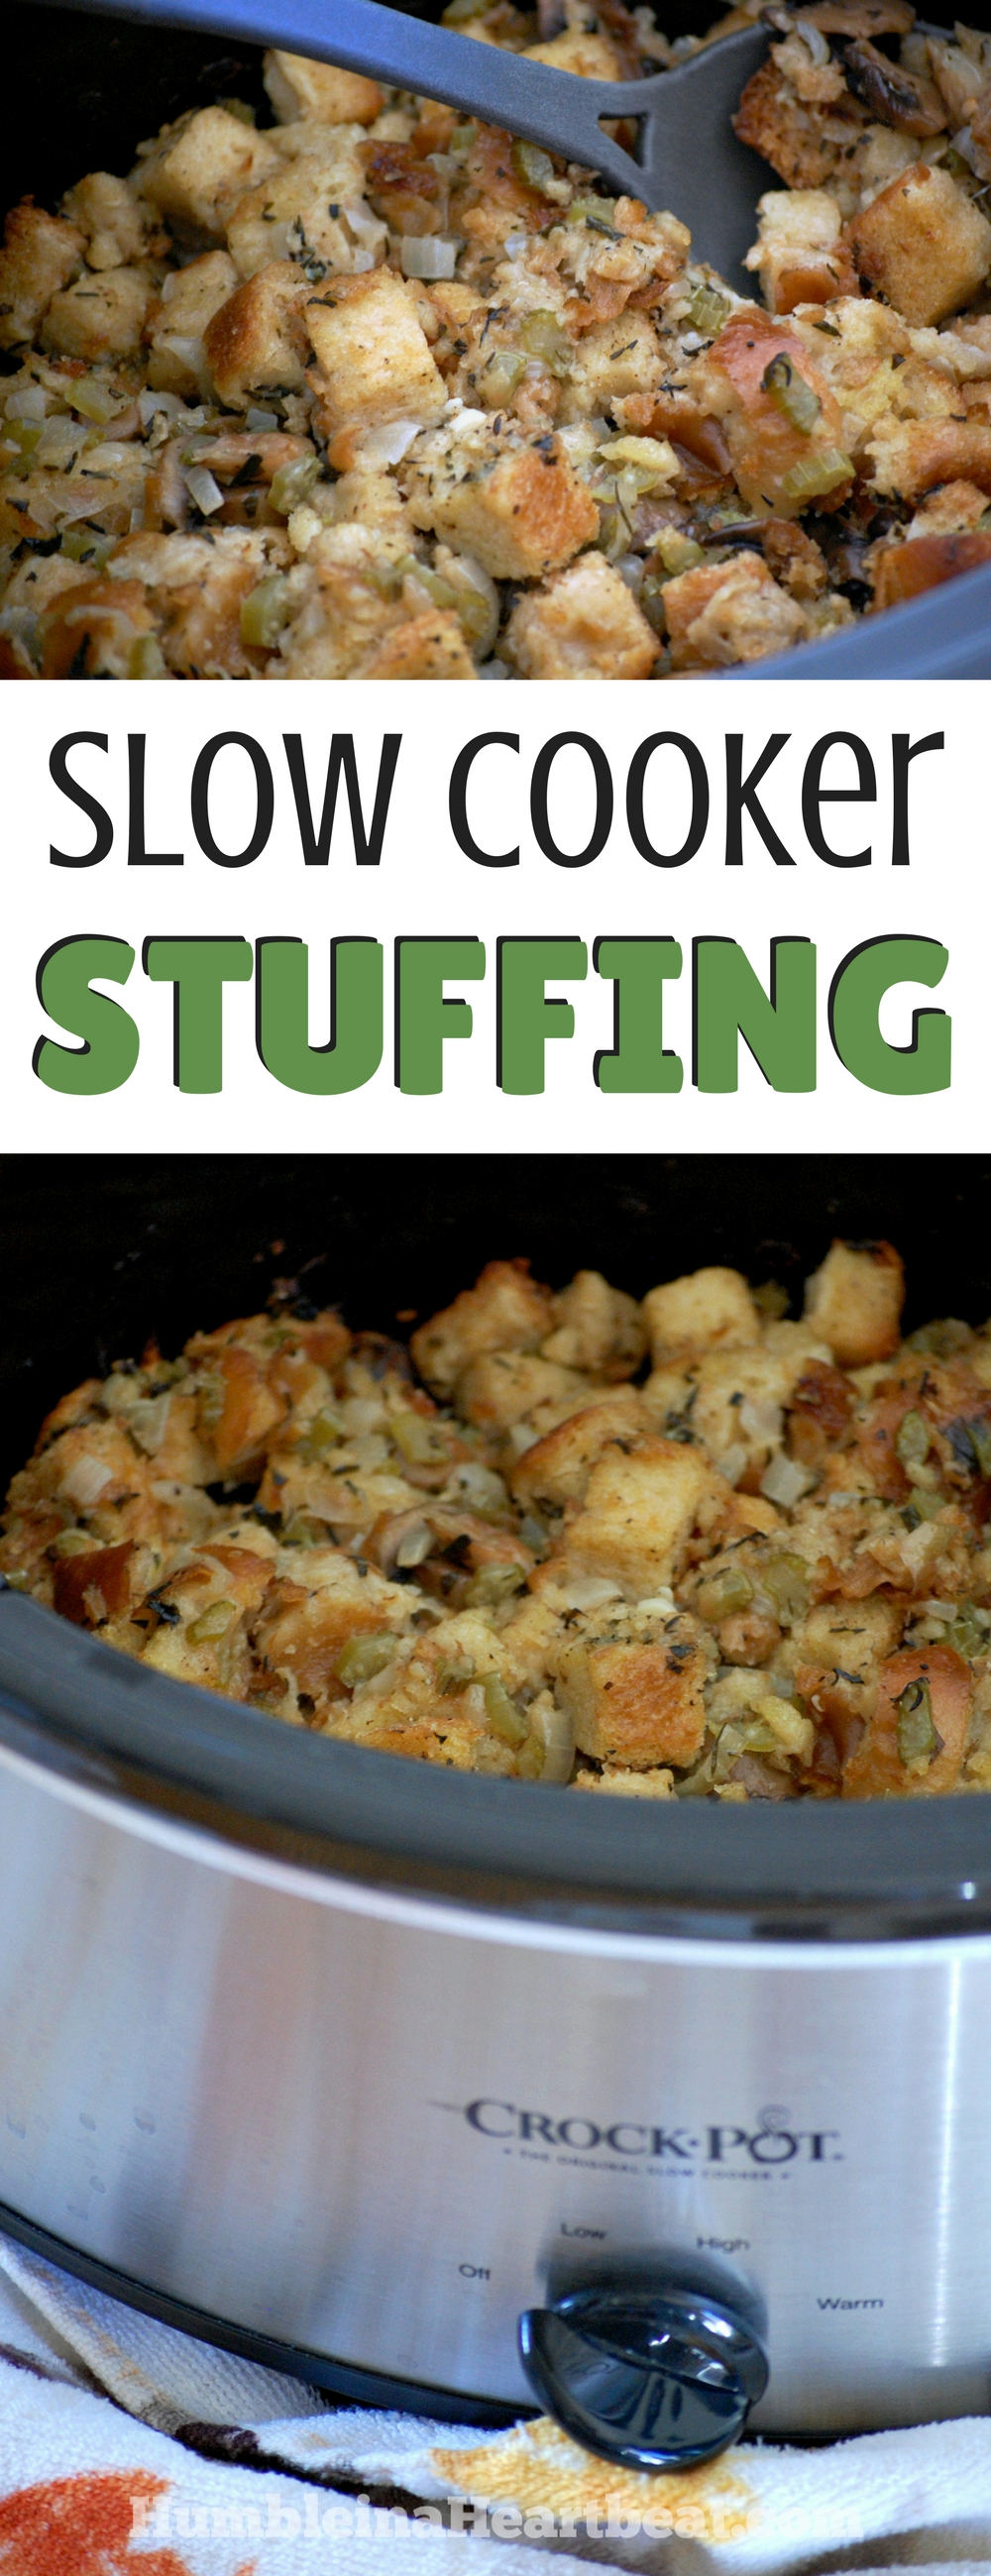 Your holiday meal just got easier with this prep ahead slow cooker stuffing. The perfect Thanksgiving {or Christmas} side dish! #slowcookerrecipes #sidedish #thanksgivingrecipes